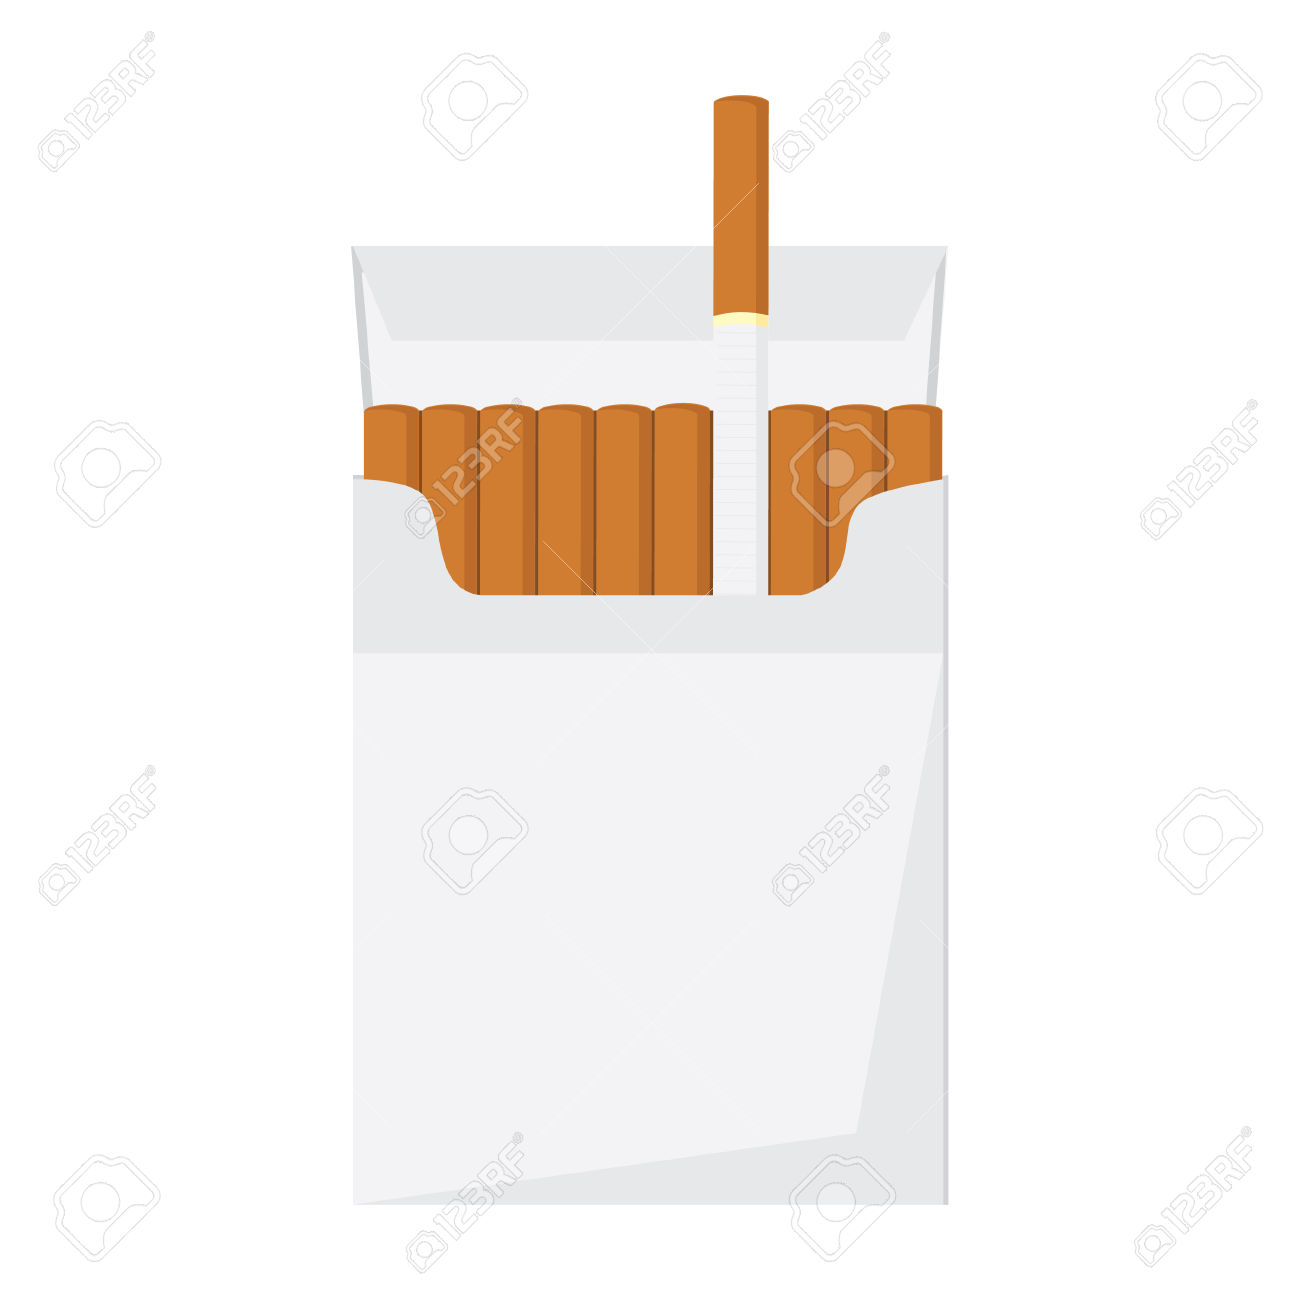 Opened Cigarette Pack With Cigarettes Vector Illustration.